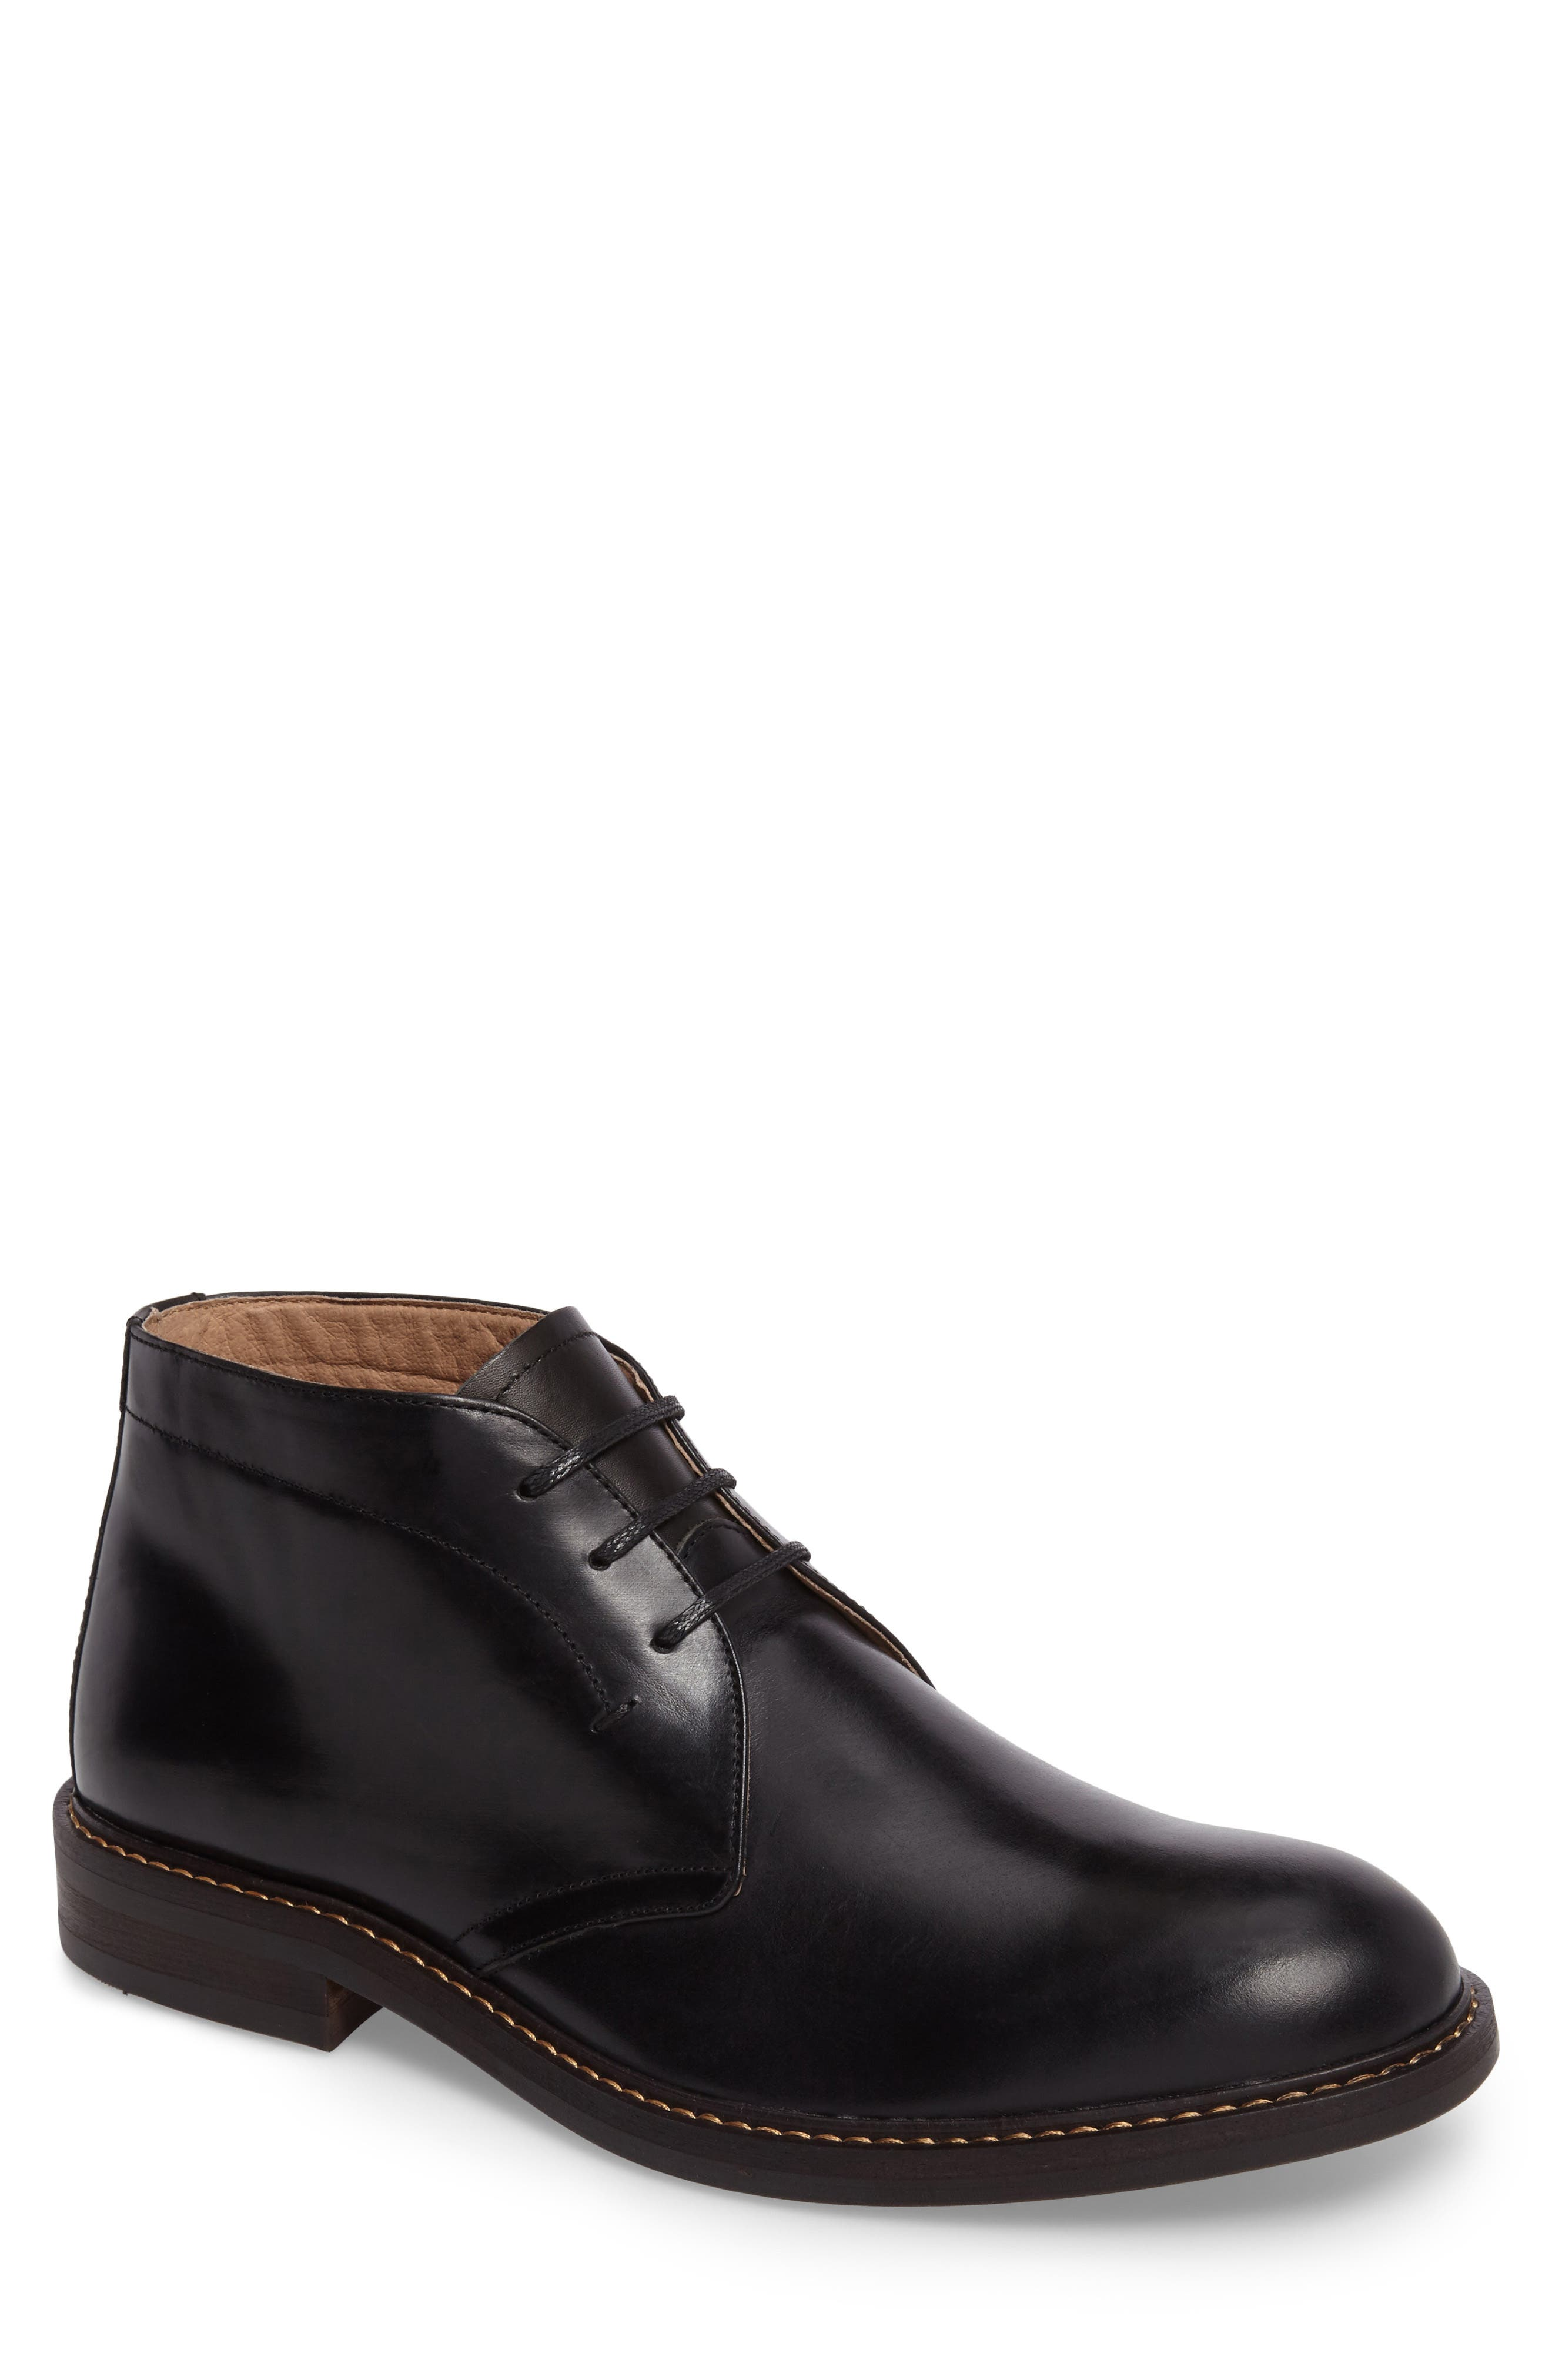 Barrett Chukka Boot,                             Main thumbnail 1, color,                             001